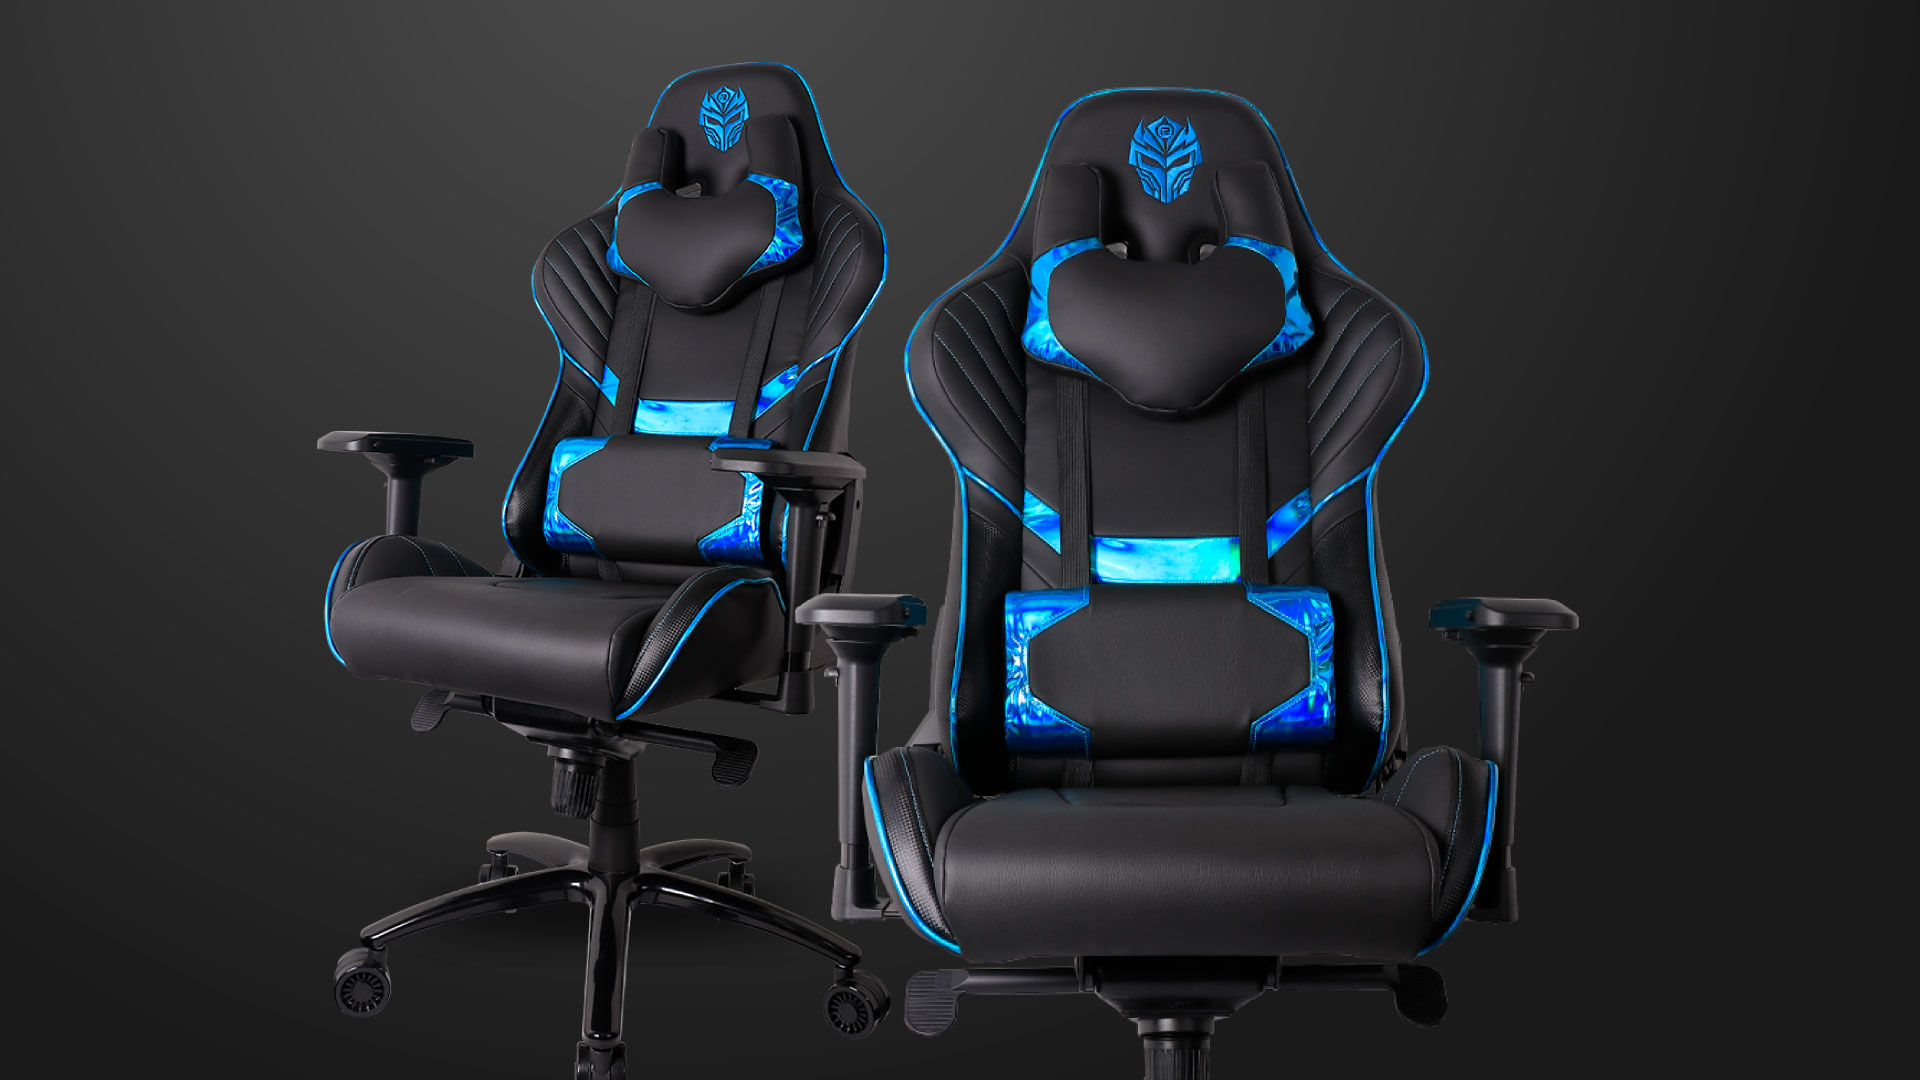 kursi gaming Rexus Gaming Chair 103 – Electra Blue WebLayout ElectraBlue 02